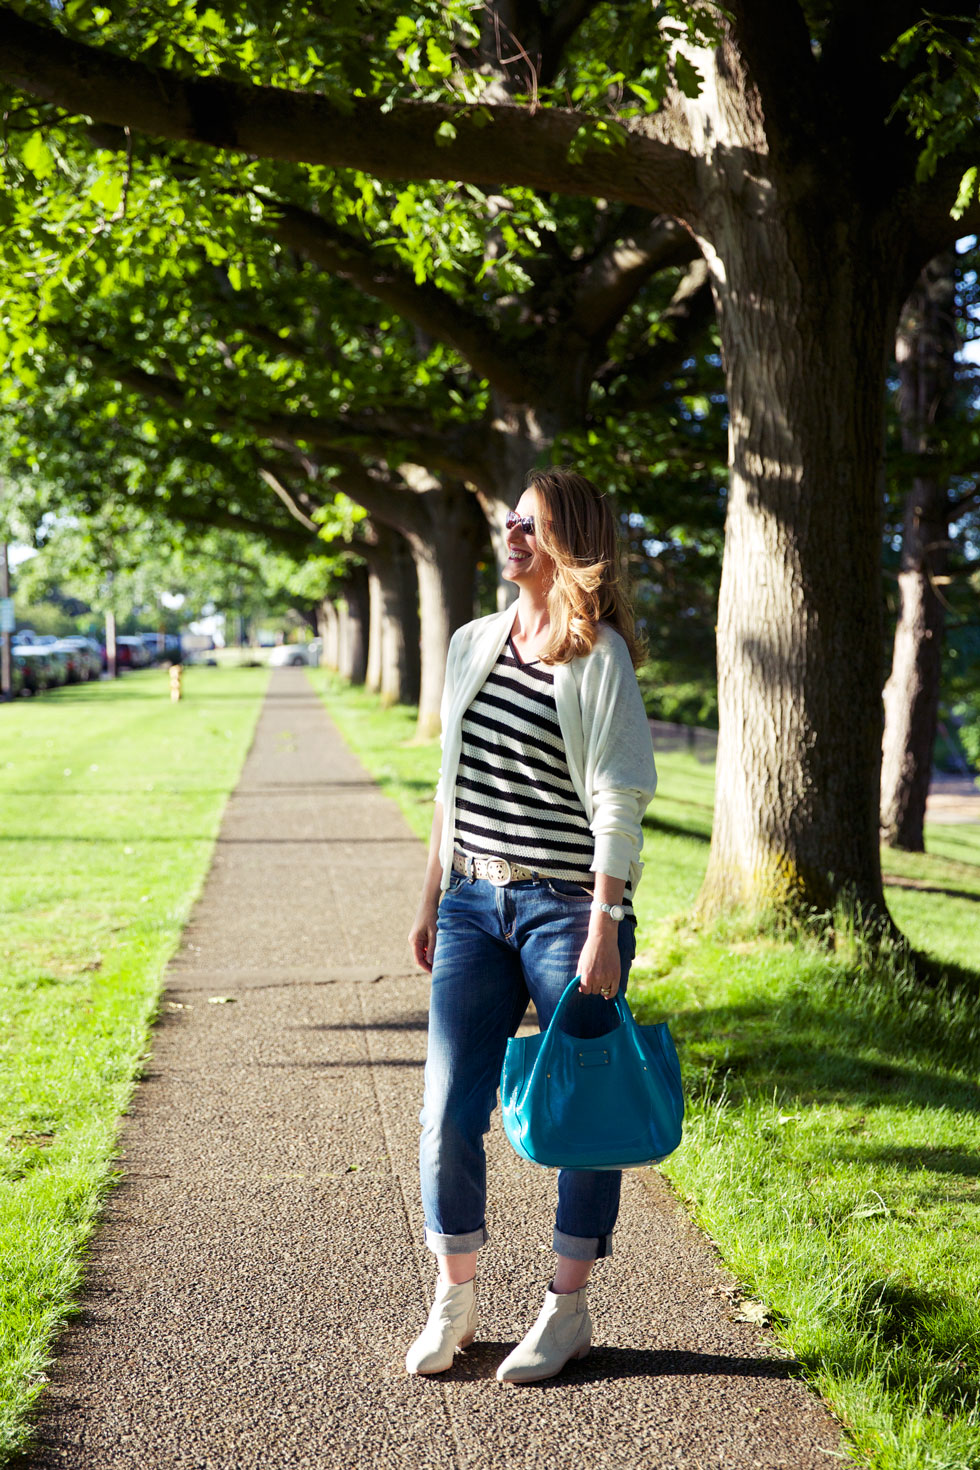 Blue Jeans - Treed Path